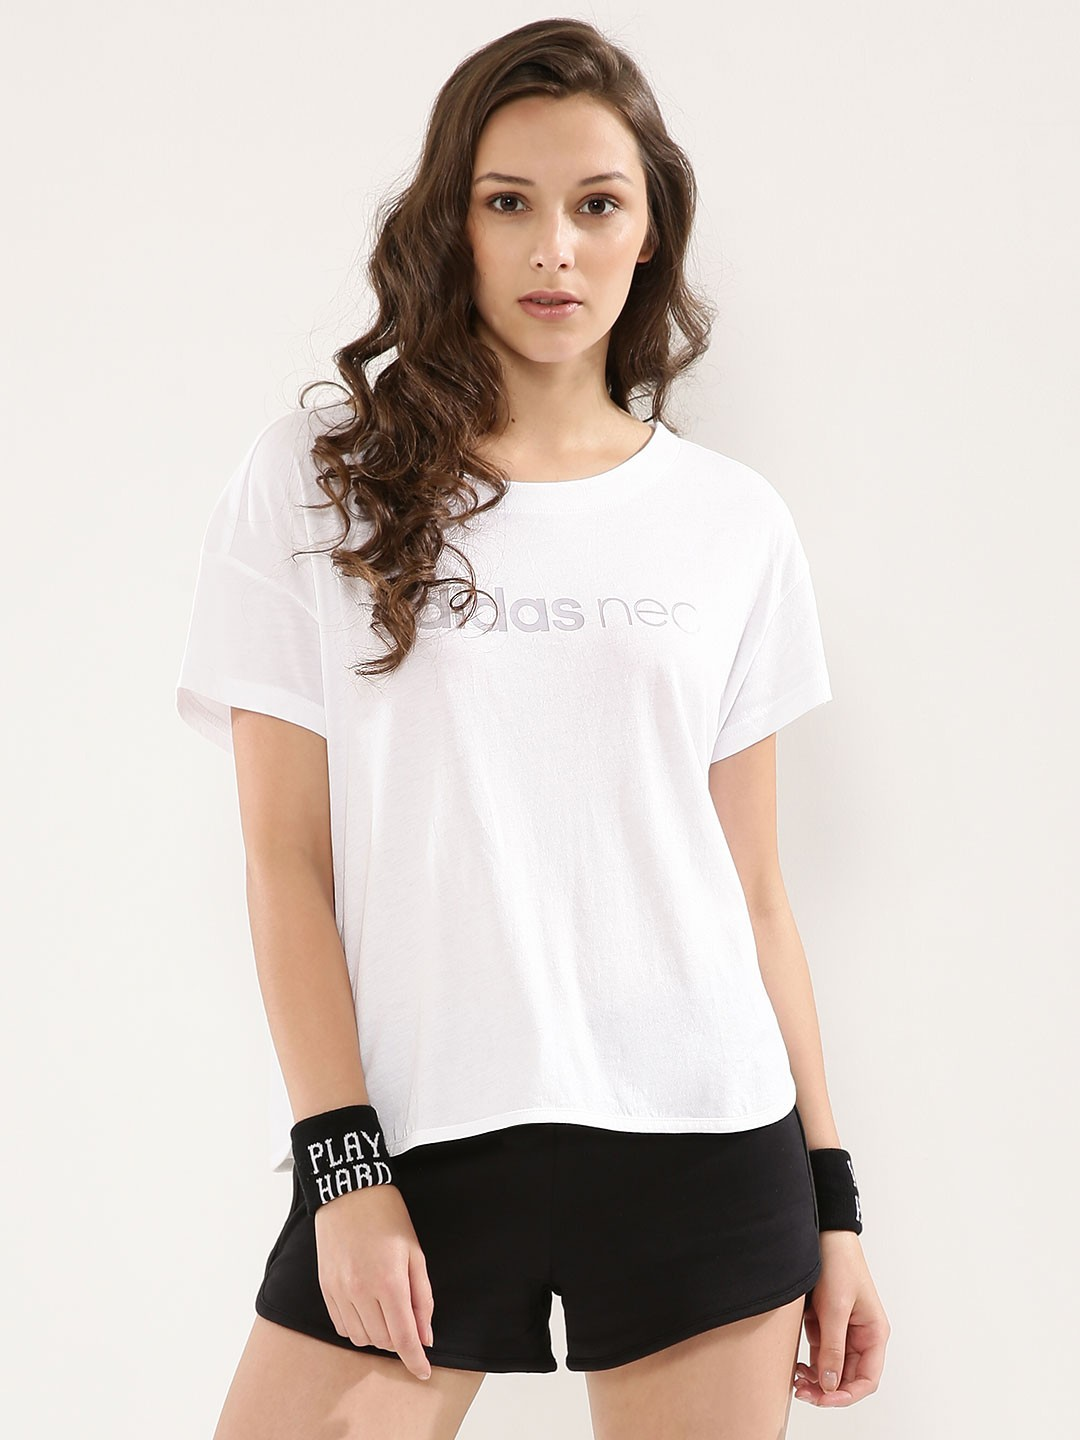 White t shirt for womens - Adidas Neo Sport Style T Shirt